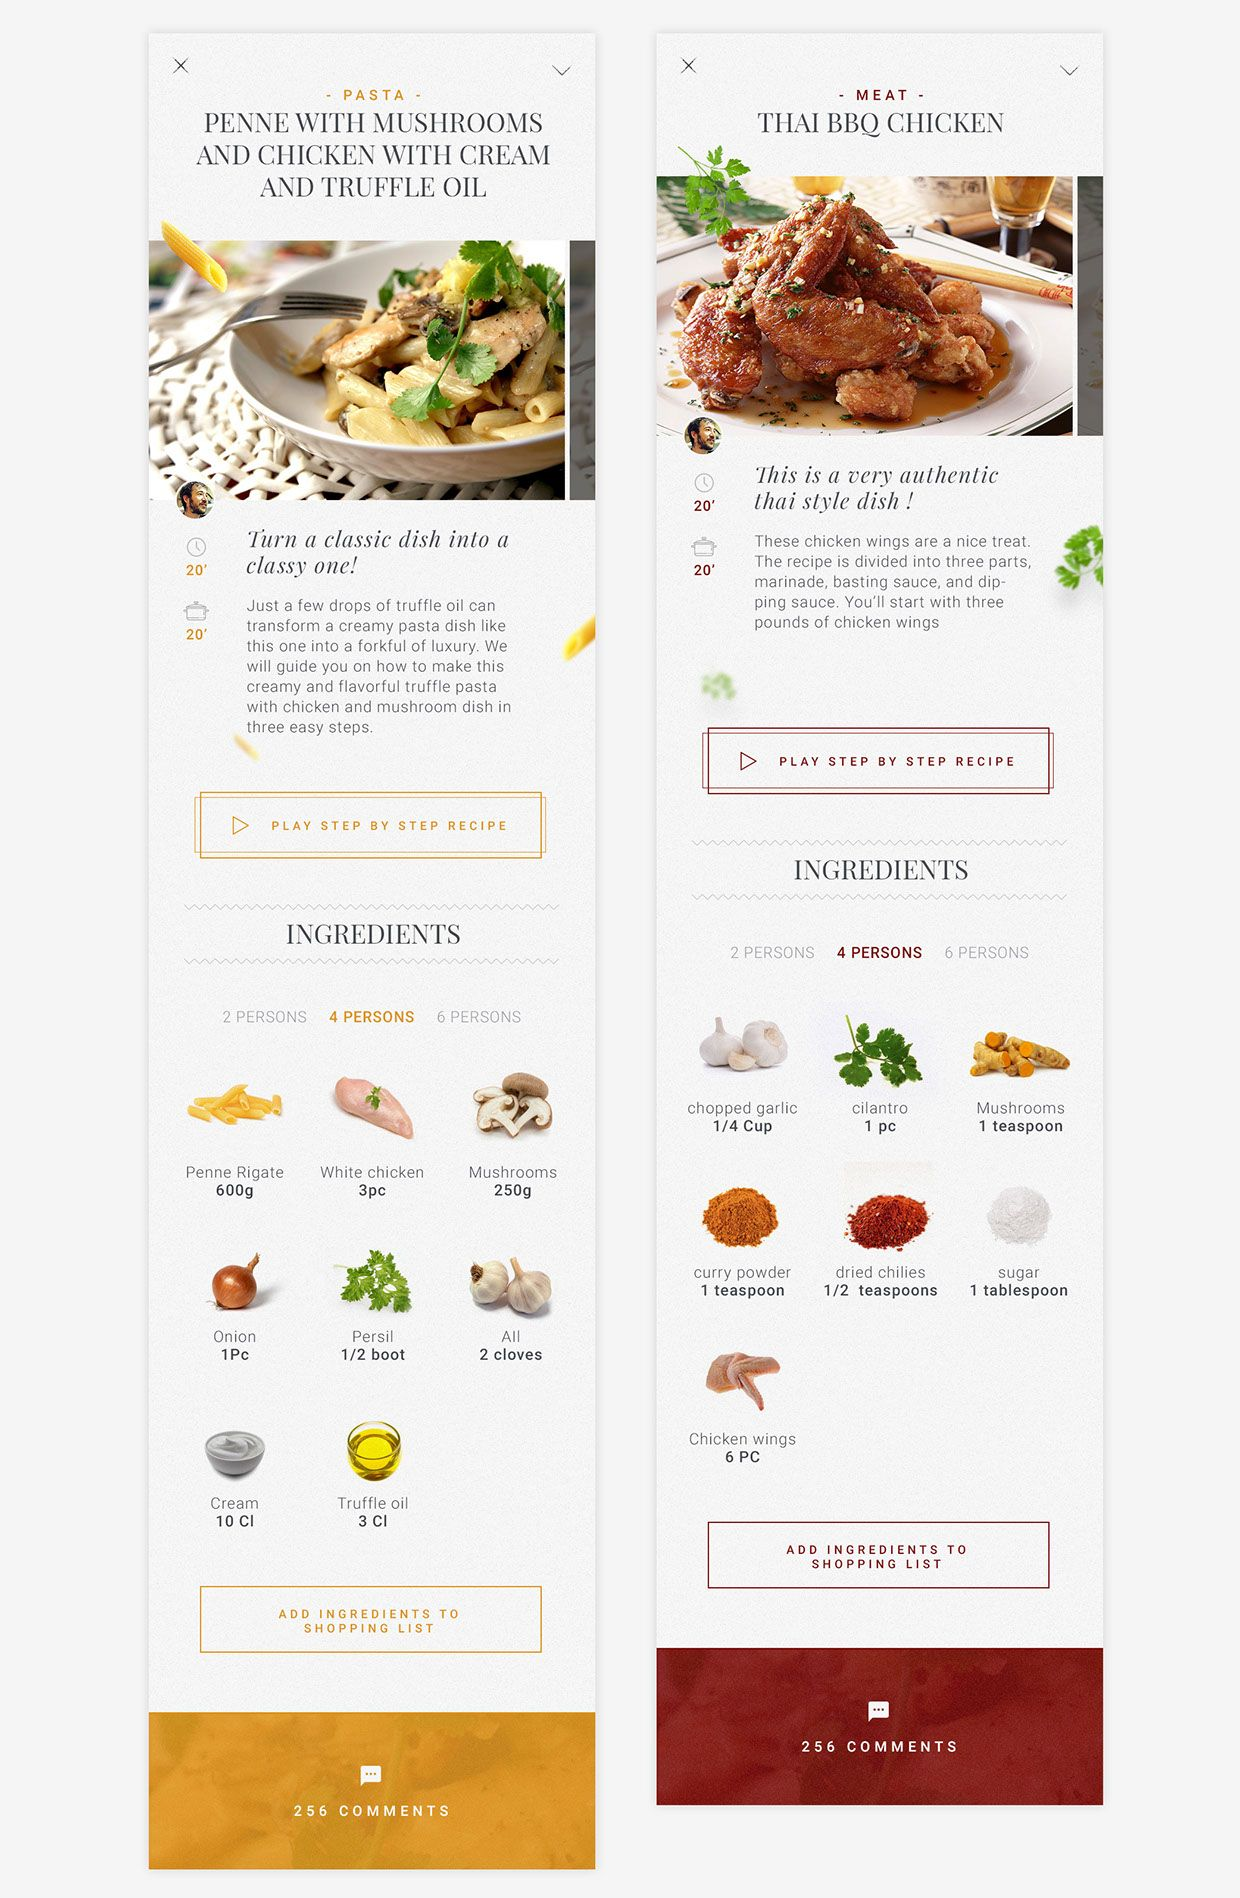 Free cooking recipe app template on behance fruitage pinterest free cooking recipe app template on behance forumfinder Images